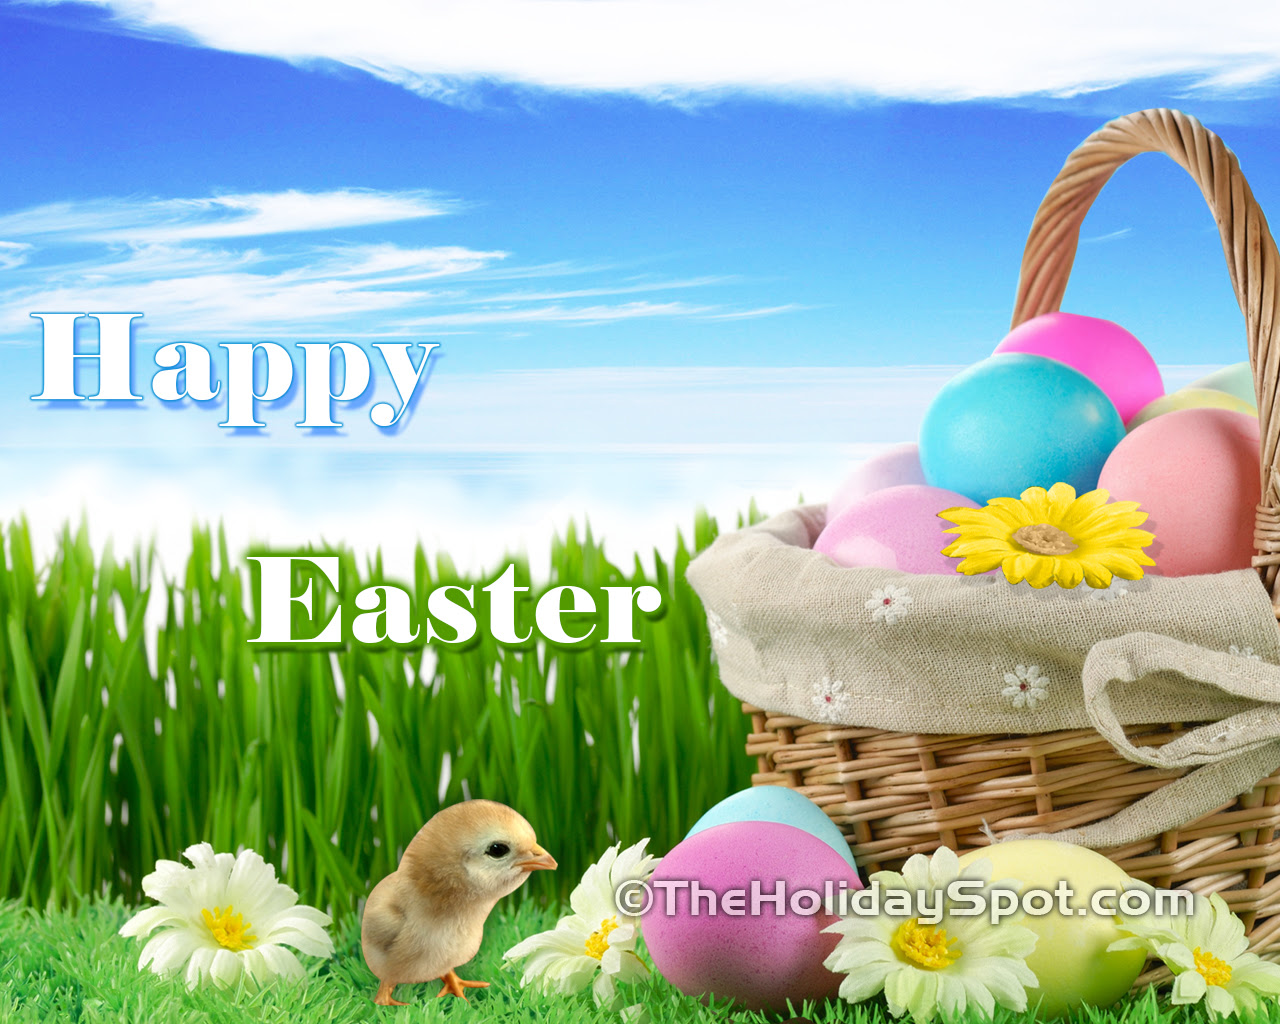 Easter wallpapers from TheHolidaySpot